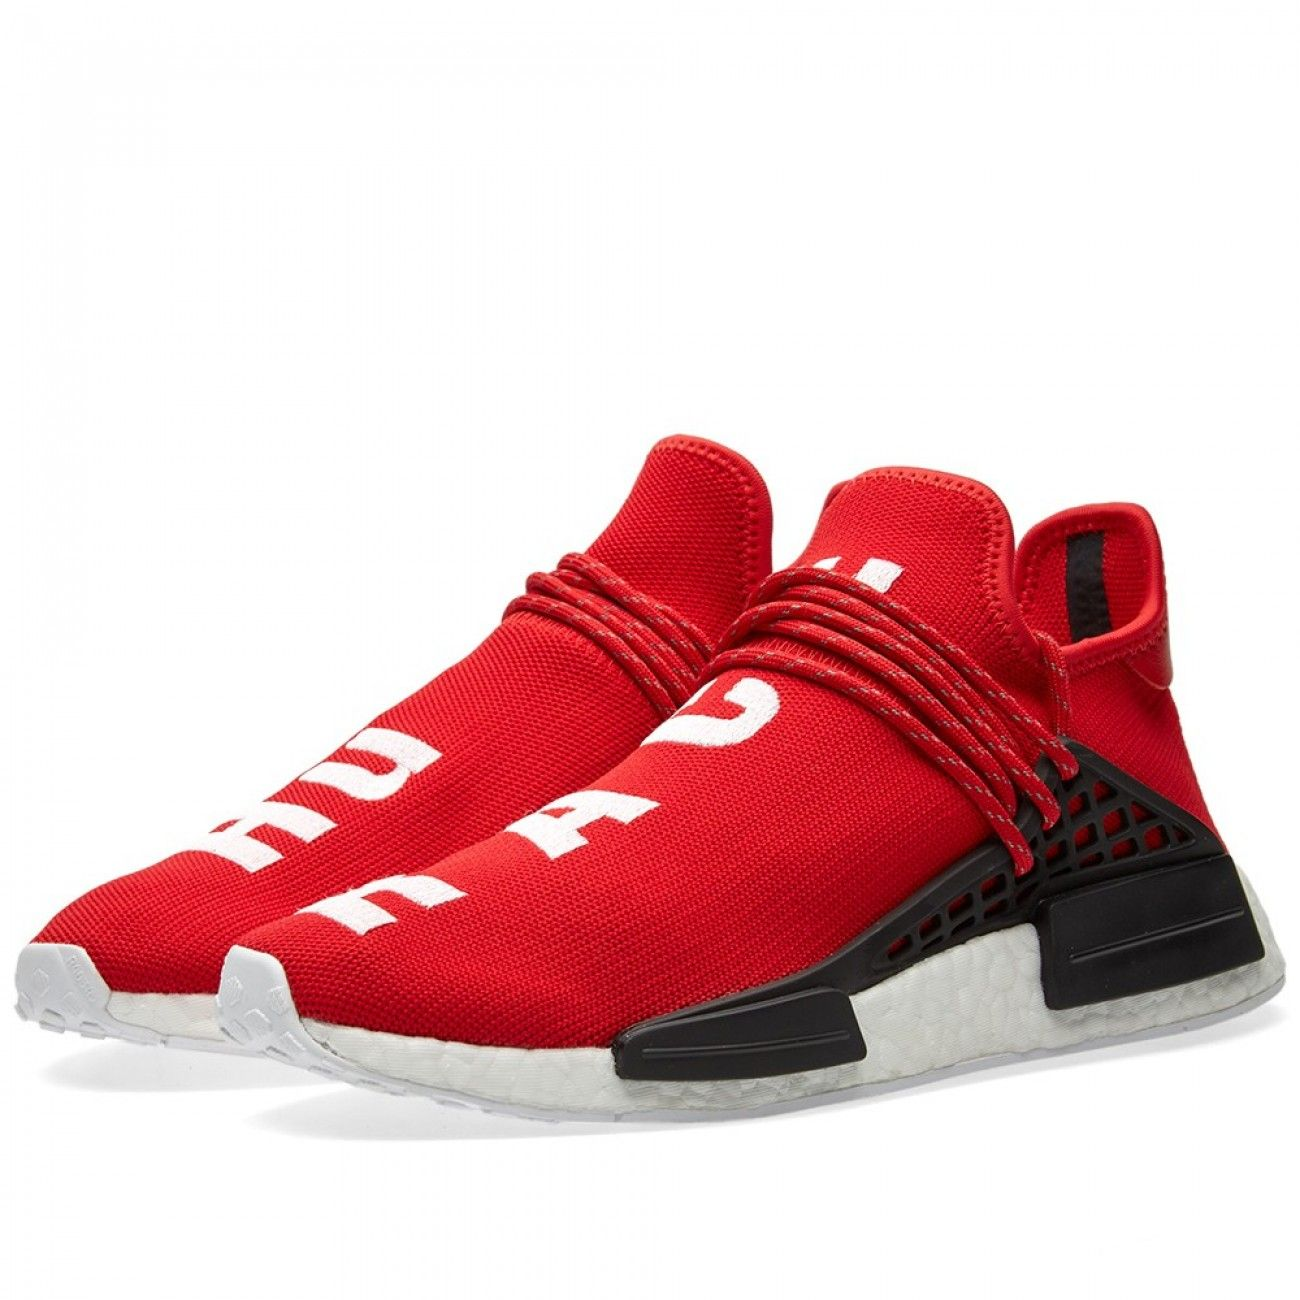 5486c0e2e Pharrell Williams x adidas Originals NMD  Human Race  –  Scarlet ...